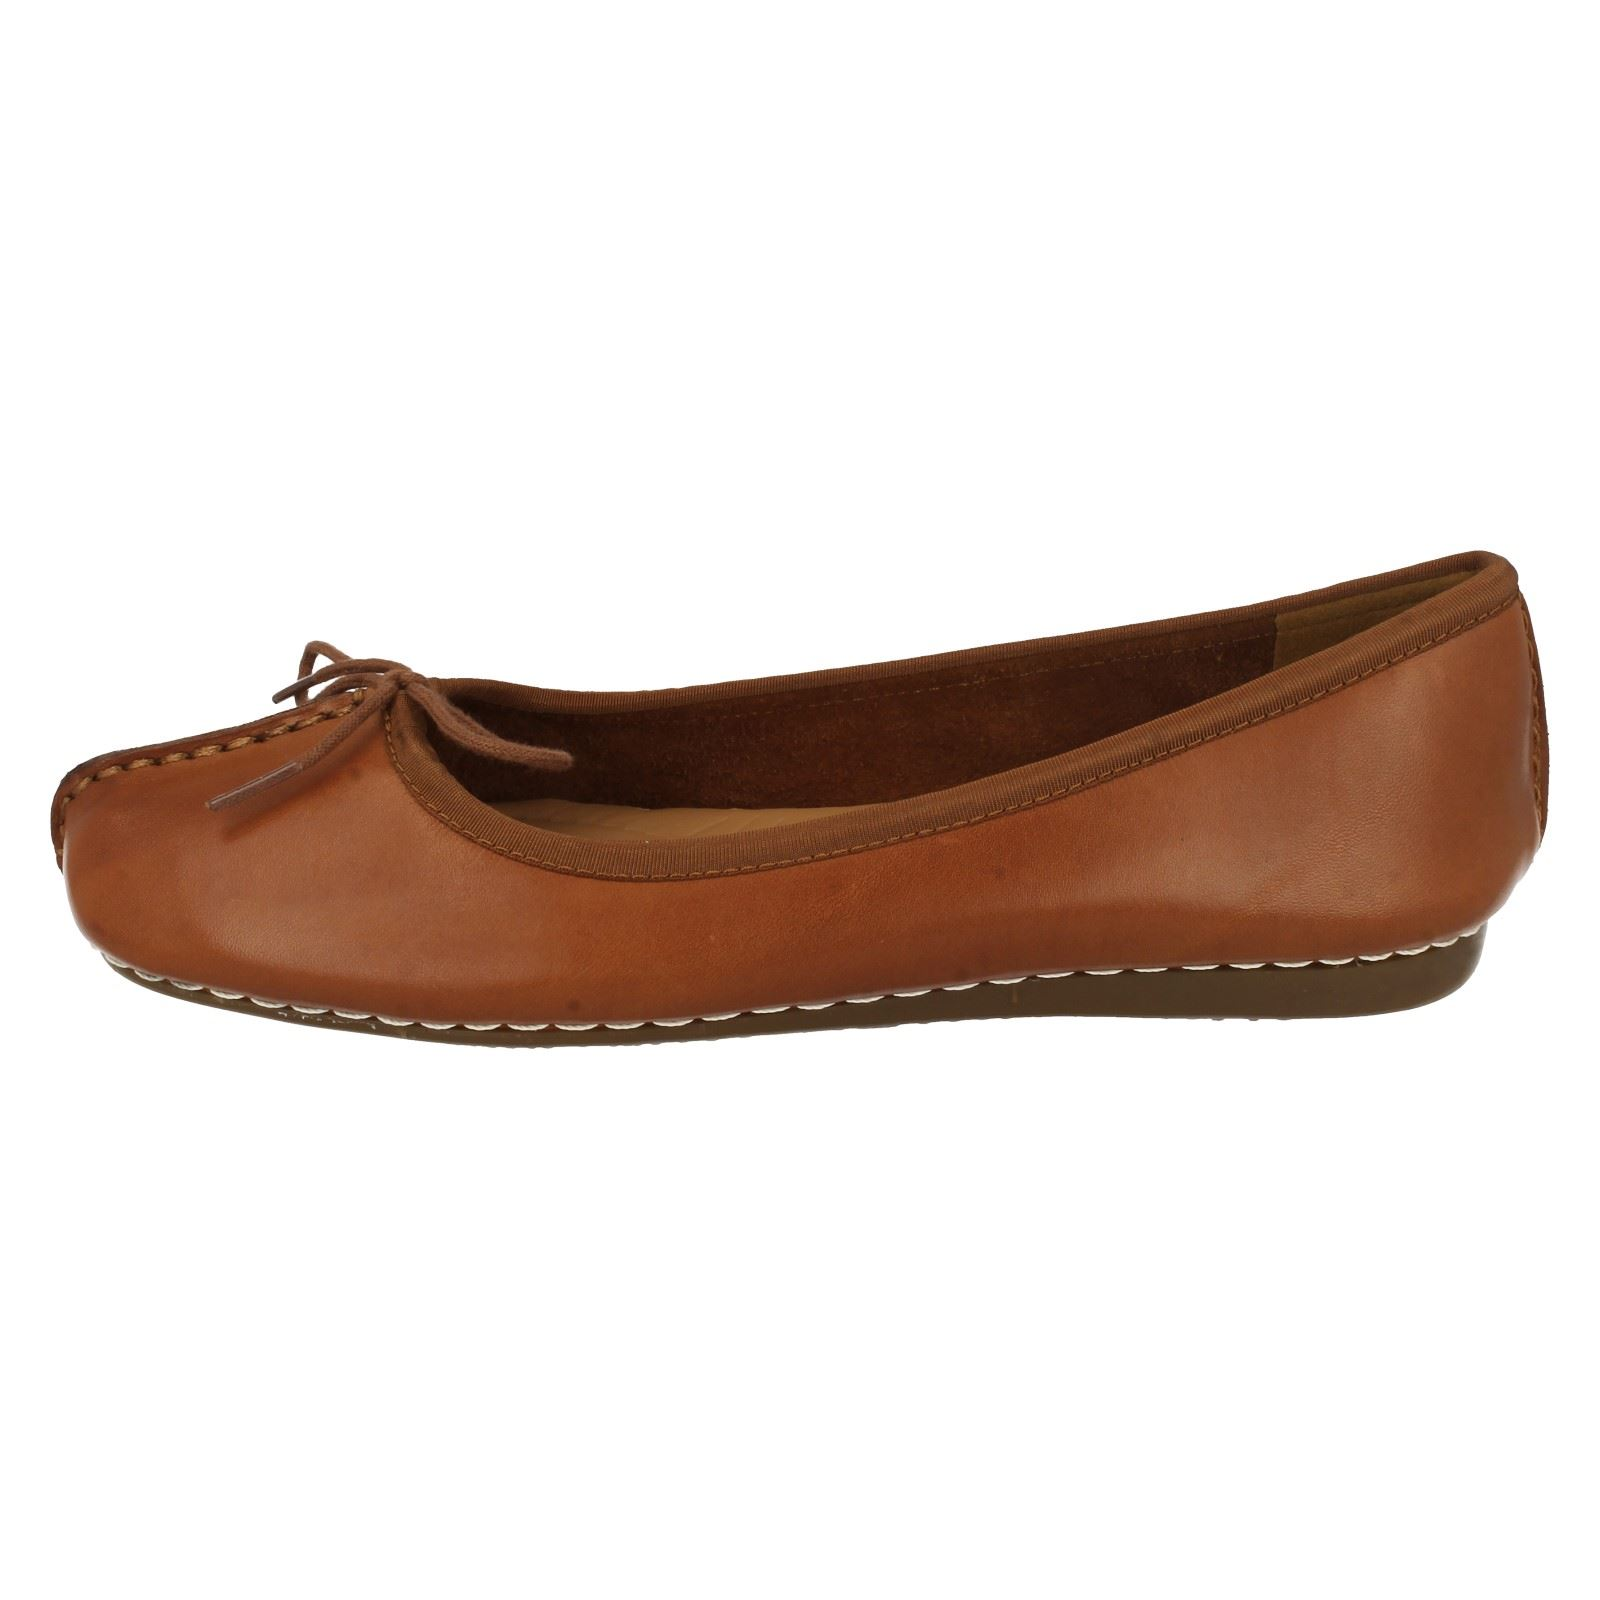 314416e4881ab Ladies Clarks Comfort Everyday Flats Freckle Ice Dark Tan D 10 for ...